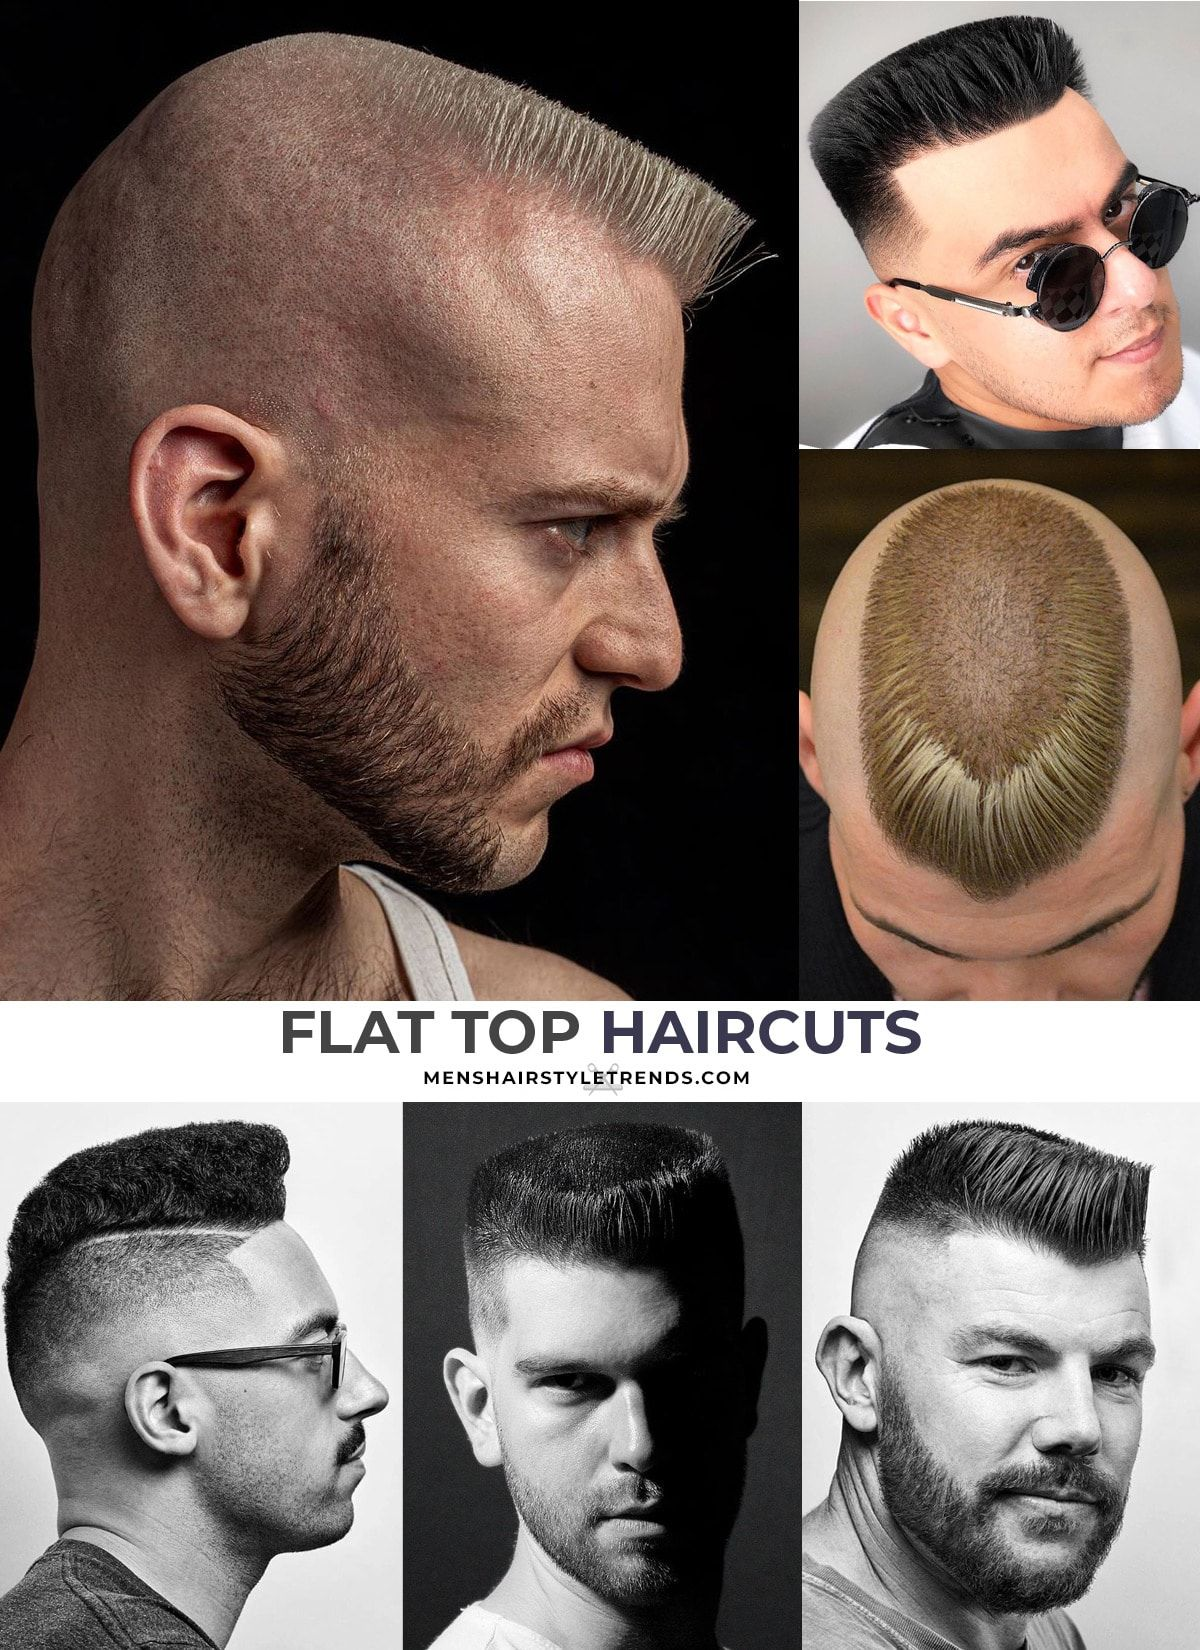 50+ How to cut a flat top haircut ideas